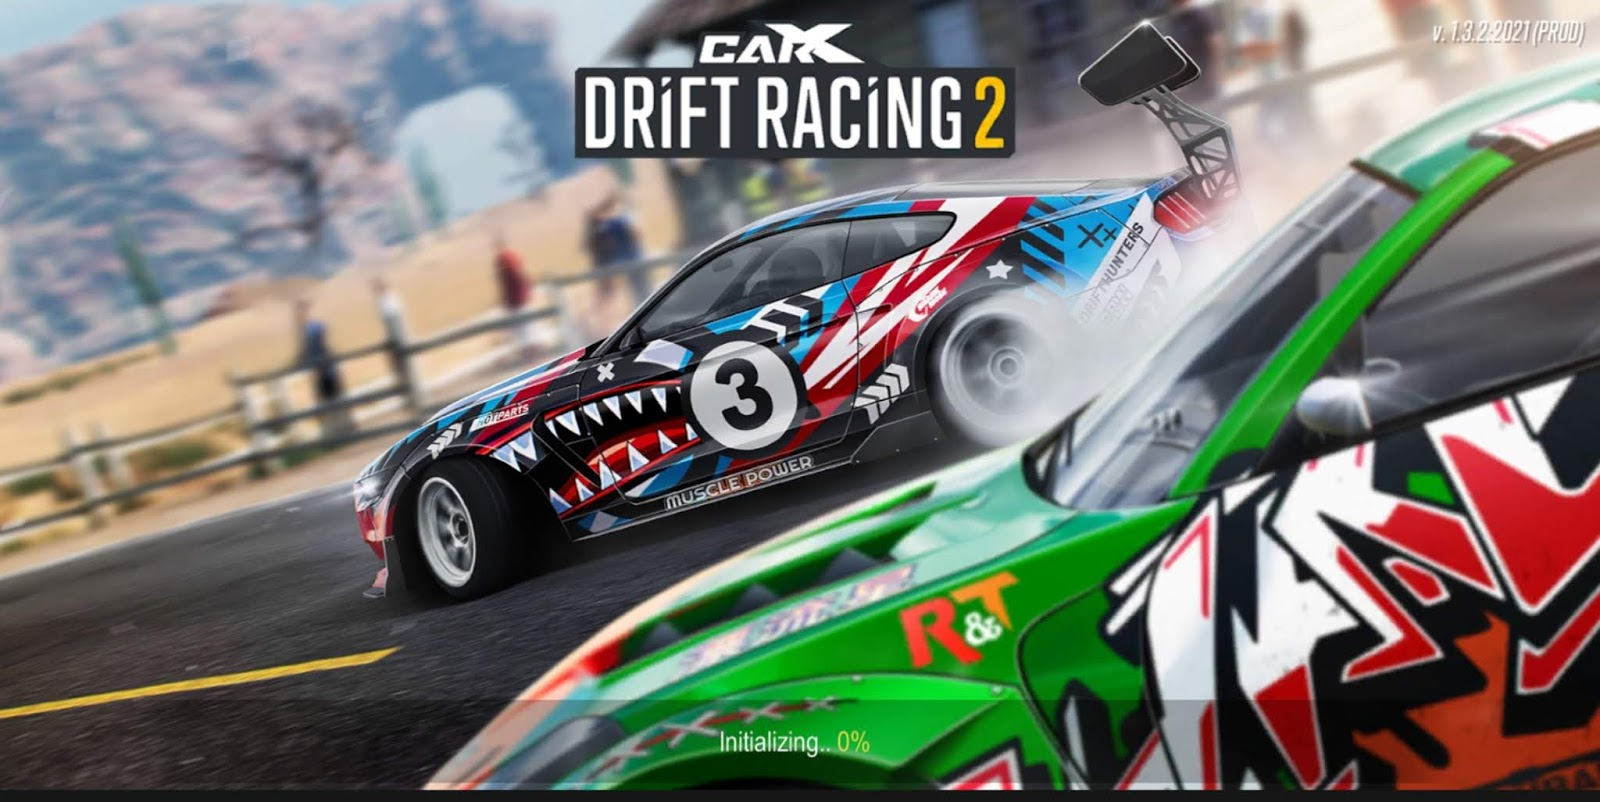 Carx Drift Racing 2 Mod Apk Data Version 1 3 2 Unlimited Money